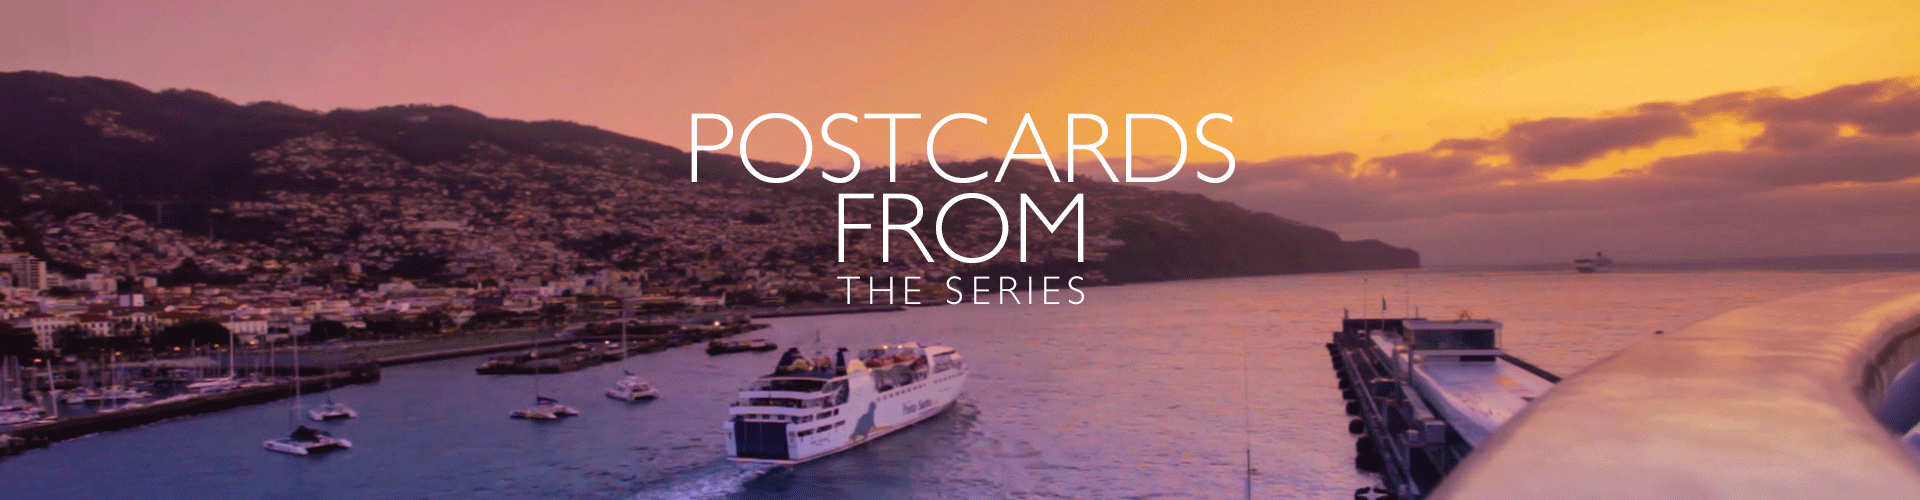 Postcards From